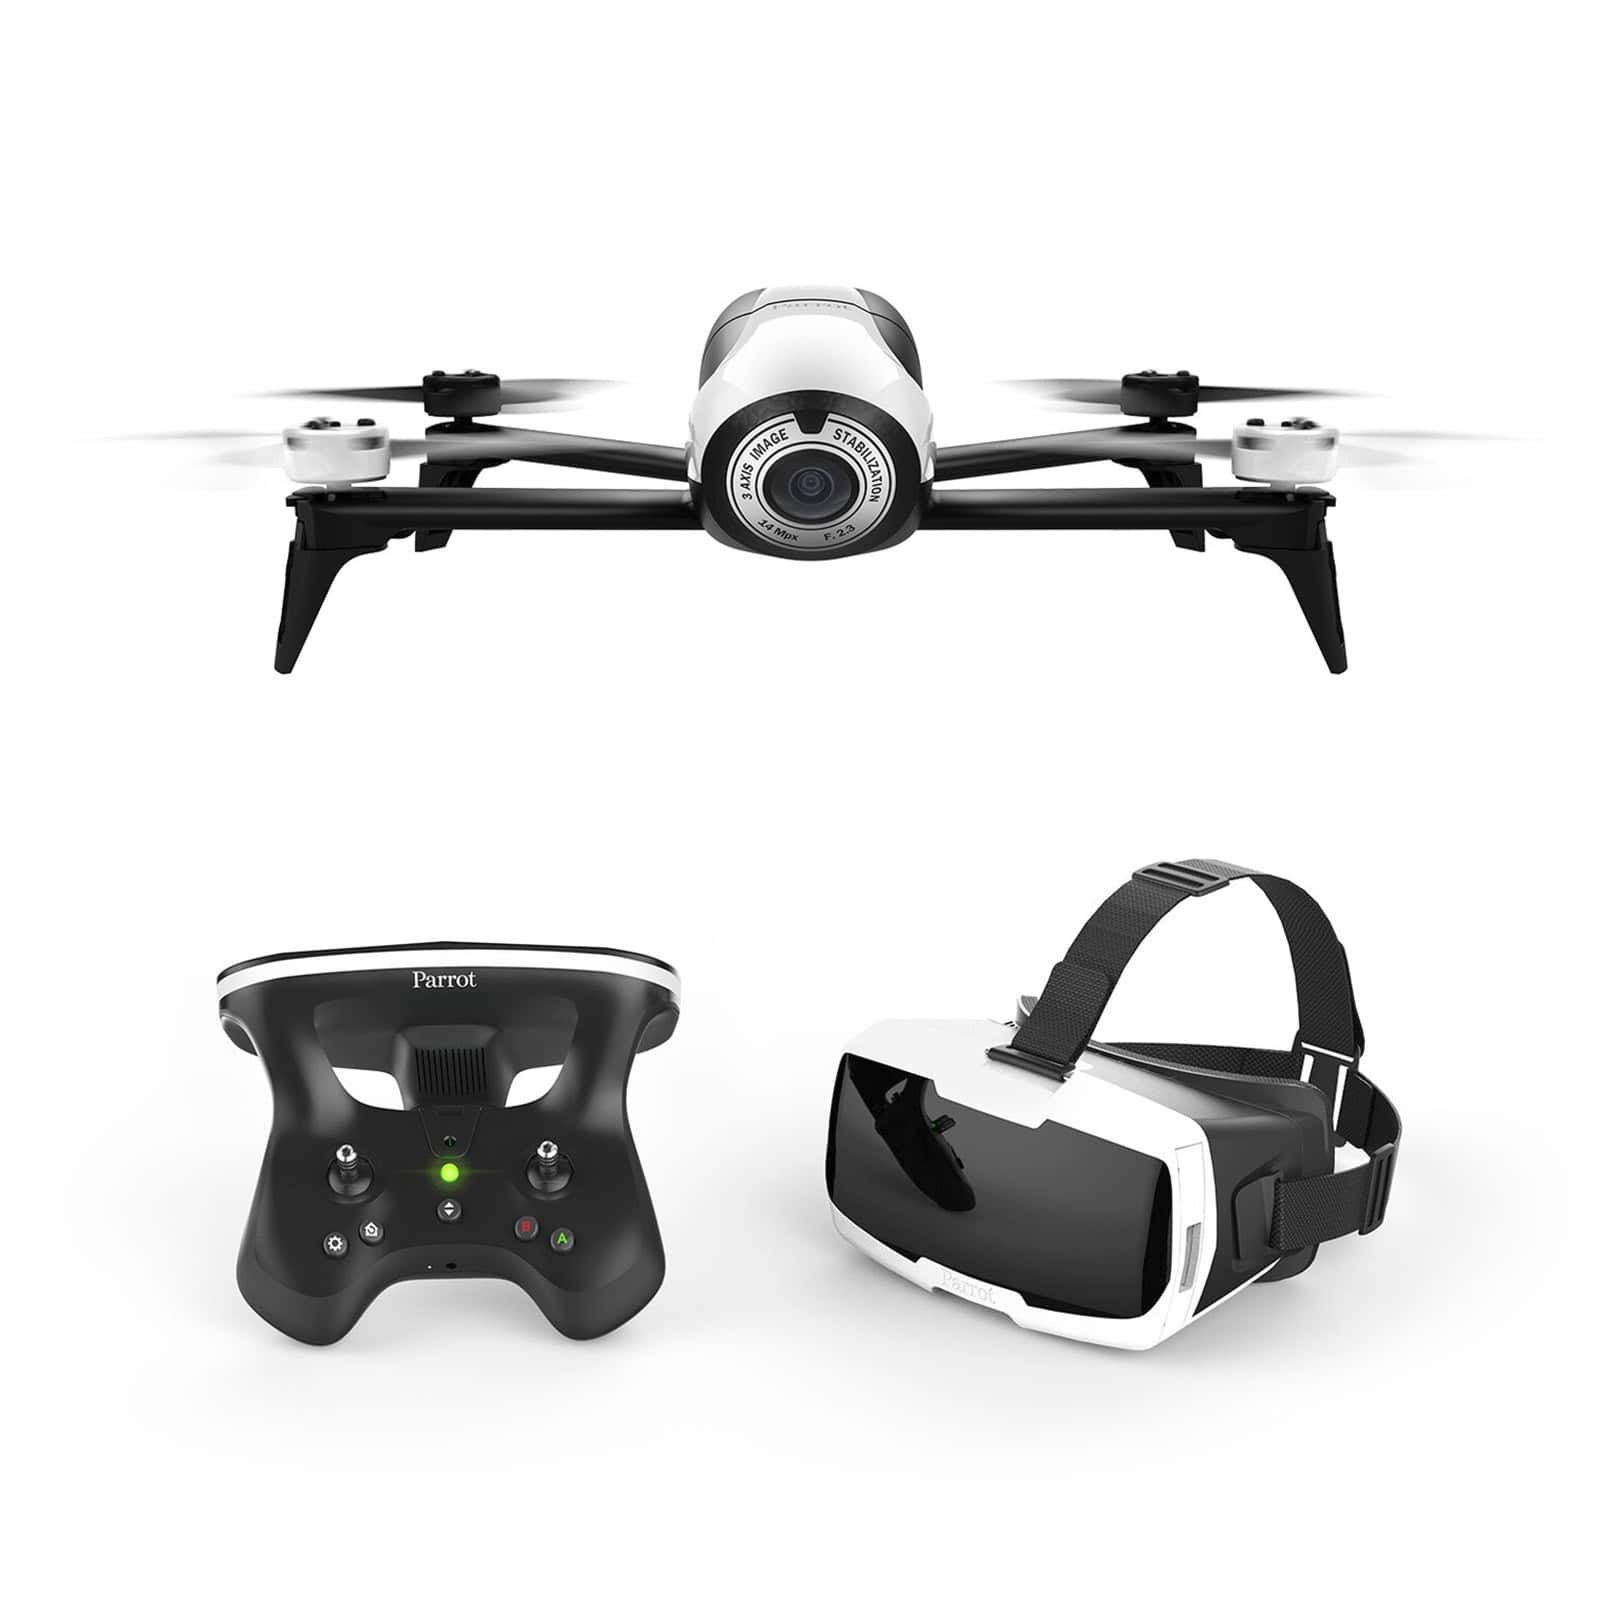 Parrot Bebop 2 FPV Drone Kit with Parrot CockpitGlasses and Parrot SkyController 2 (Refurbished) for $269.99  + Free Shipping